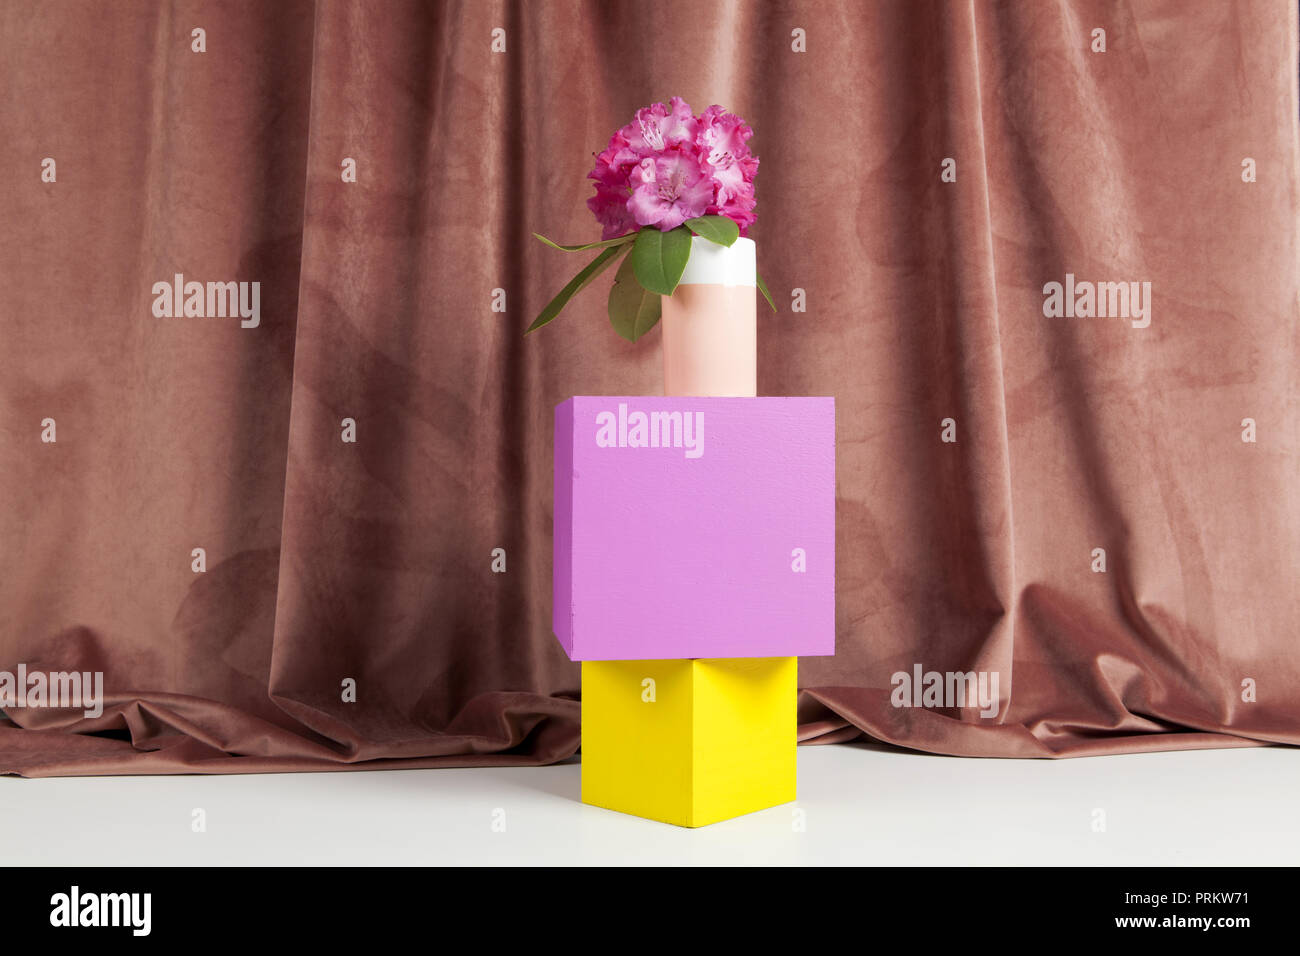 Equilibrium Stock Photos & Equilibrium Stock Images - Alamy